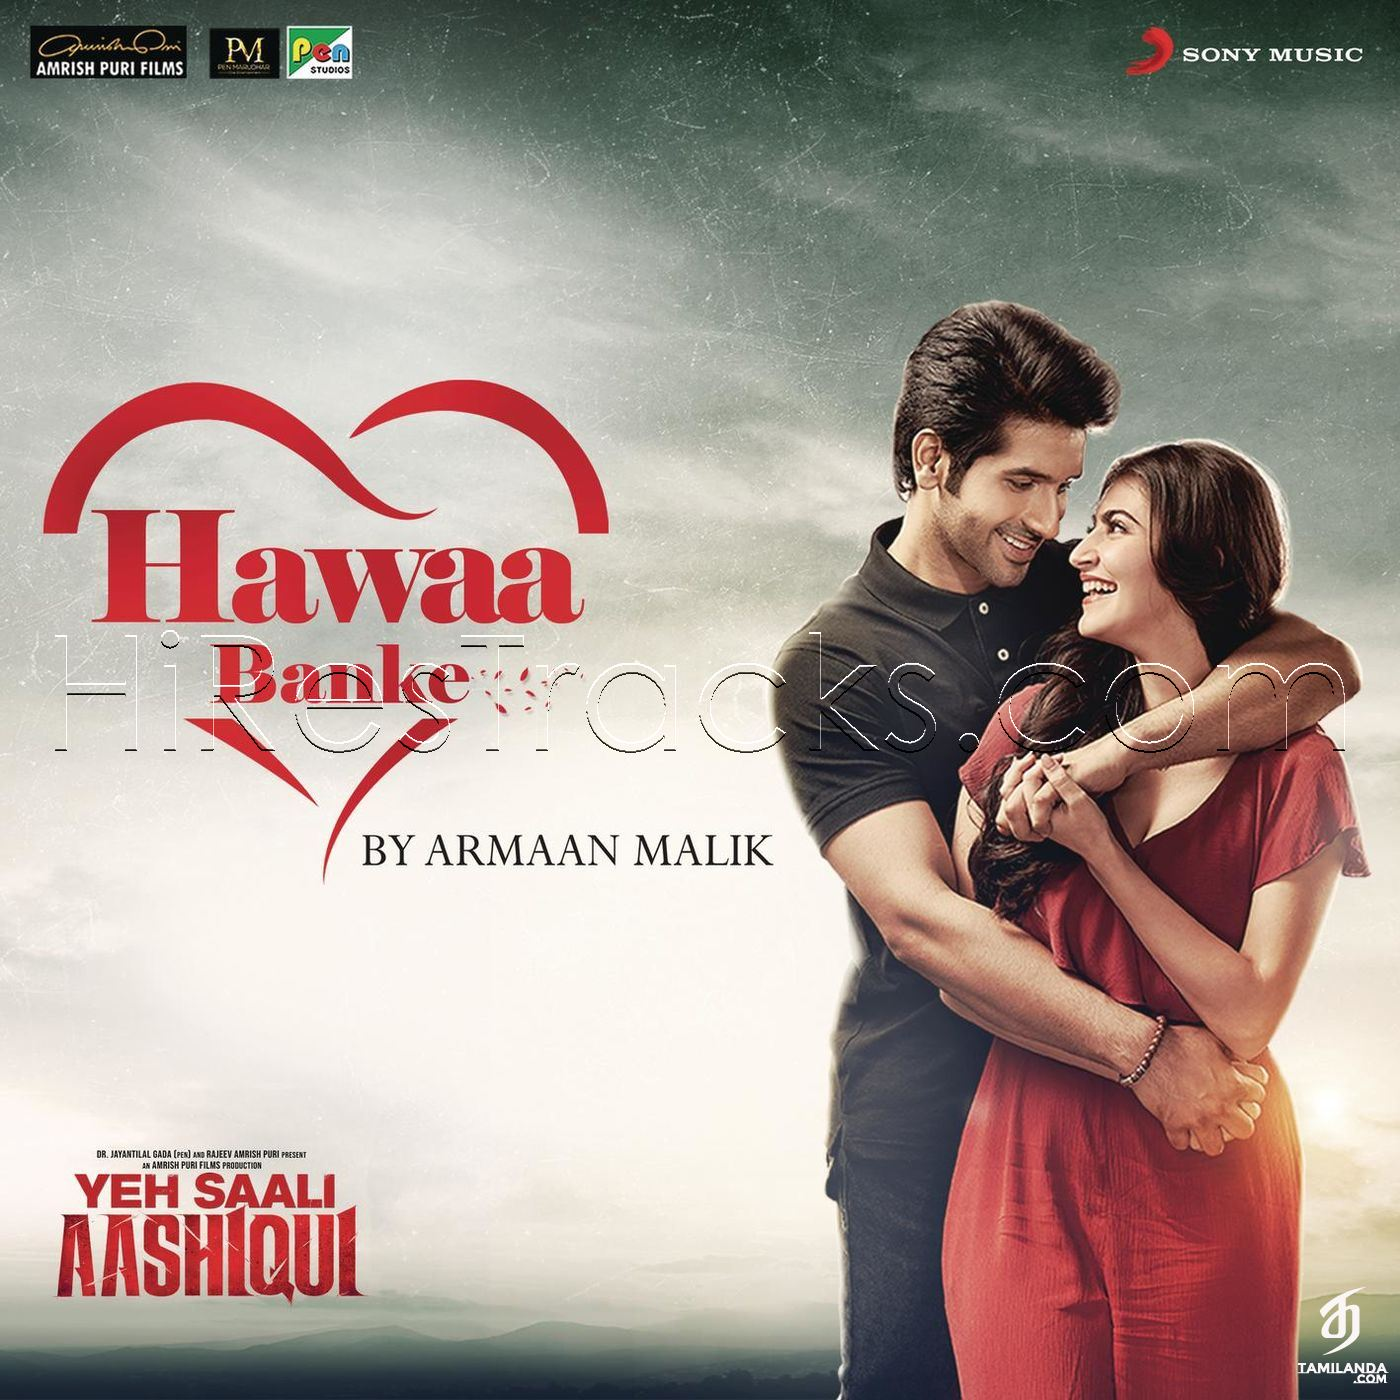 Hawaa Banke (From Yeh Saali Aashiqui) (2019) (Hitesh Modak) (Sony Music) [Digital-DL-FLAC]